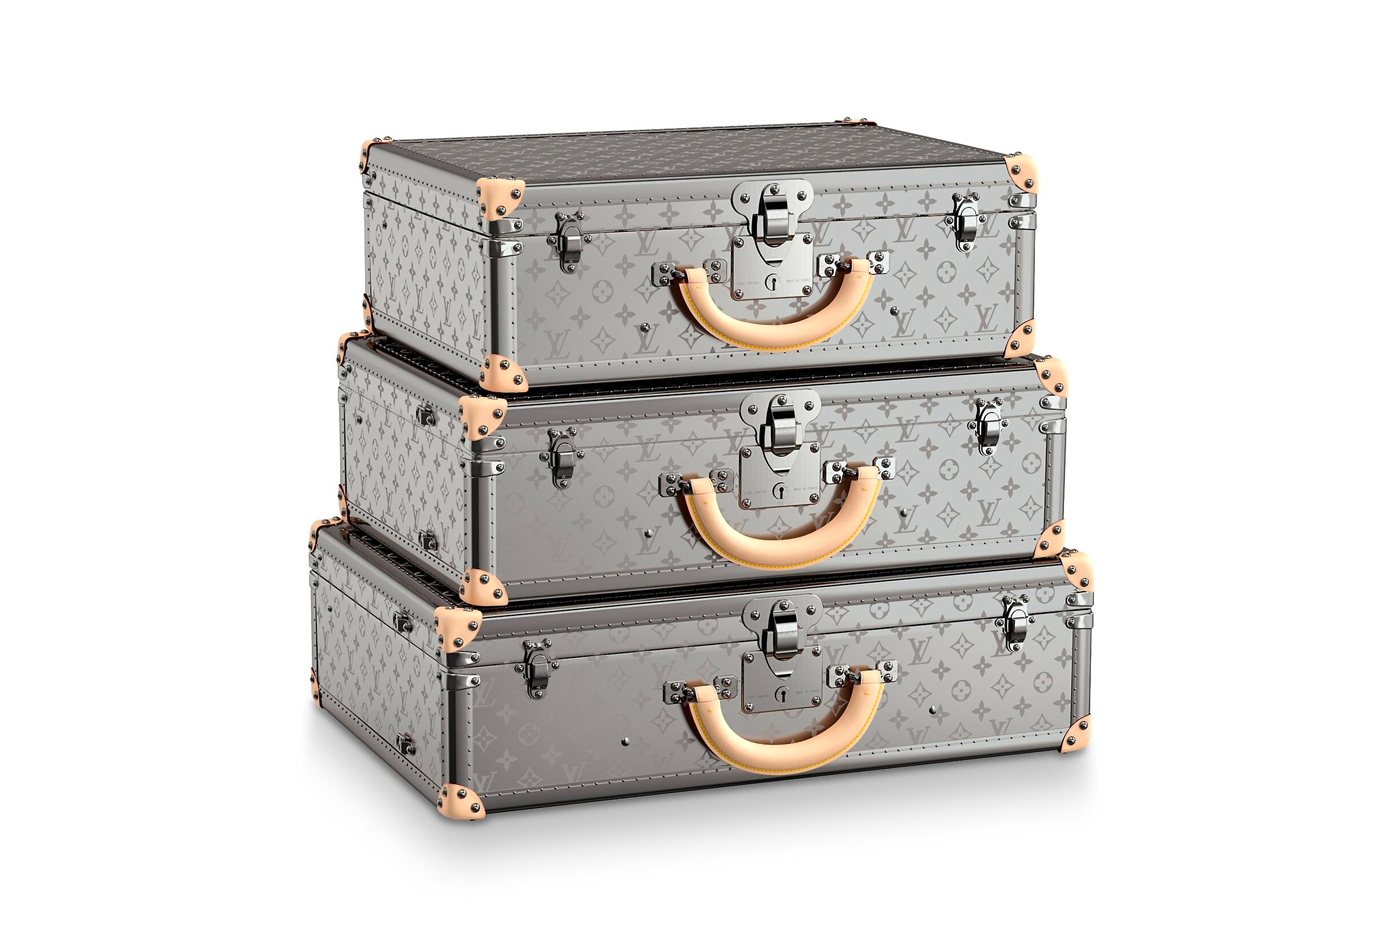 Louis Vuitton Bisten Monogram Titane Collection 50 55 60 suitcase travel luggage trunk luxury designer fashion